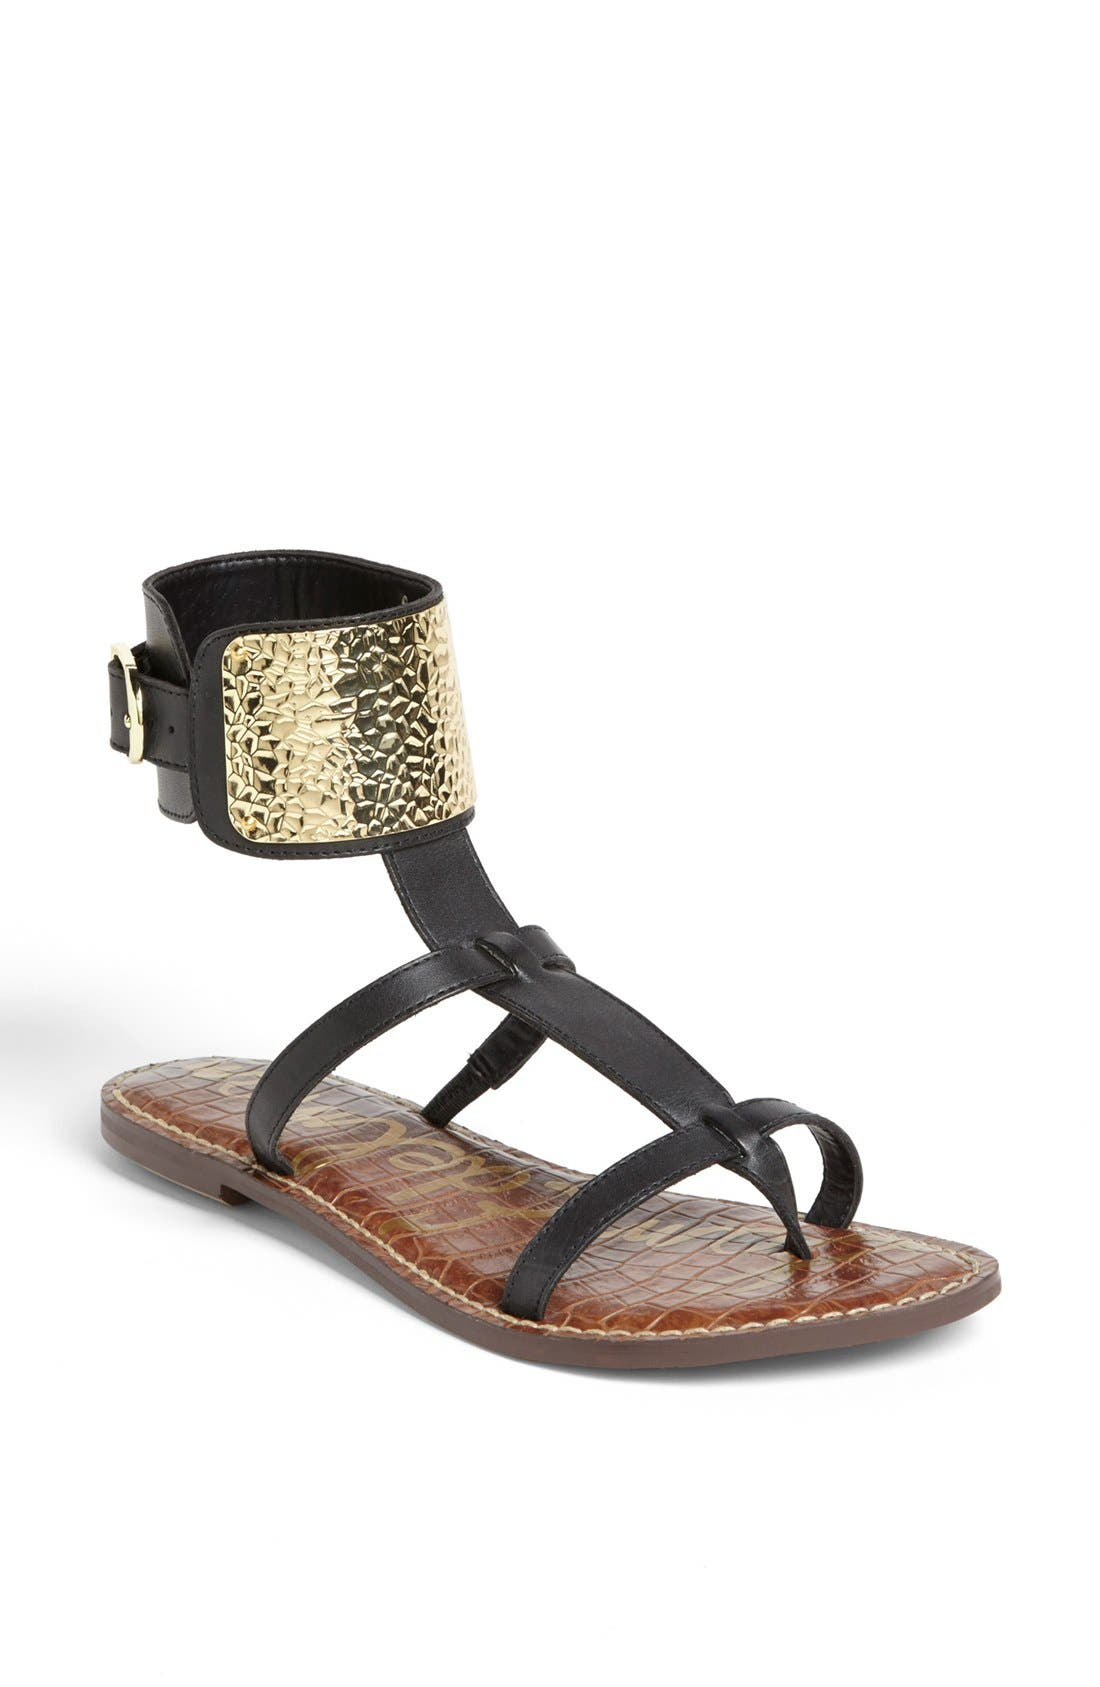 SAM EDELMAN 'Genette' Sandal, Main, color, 001